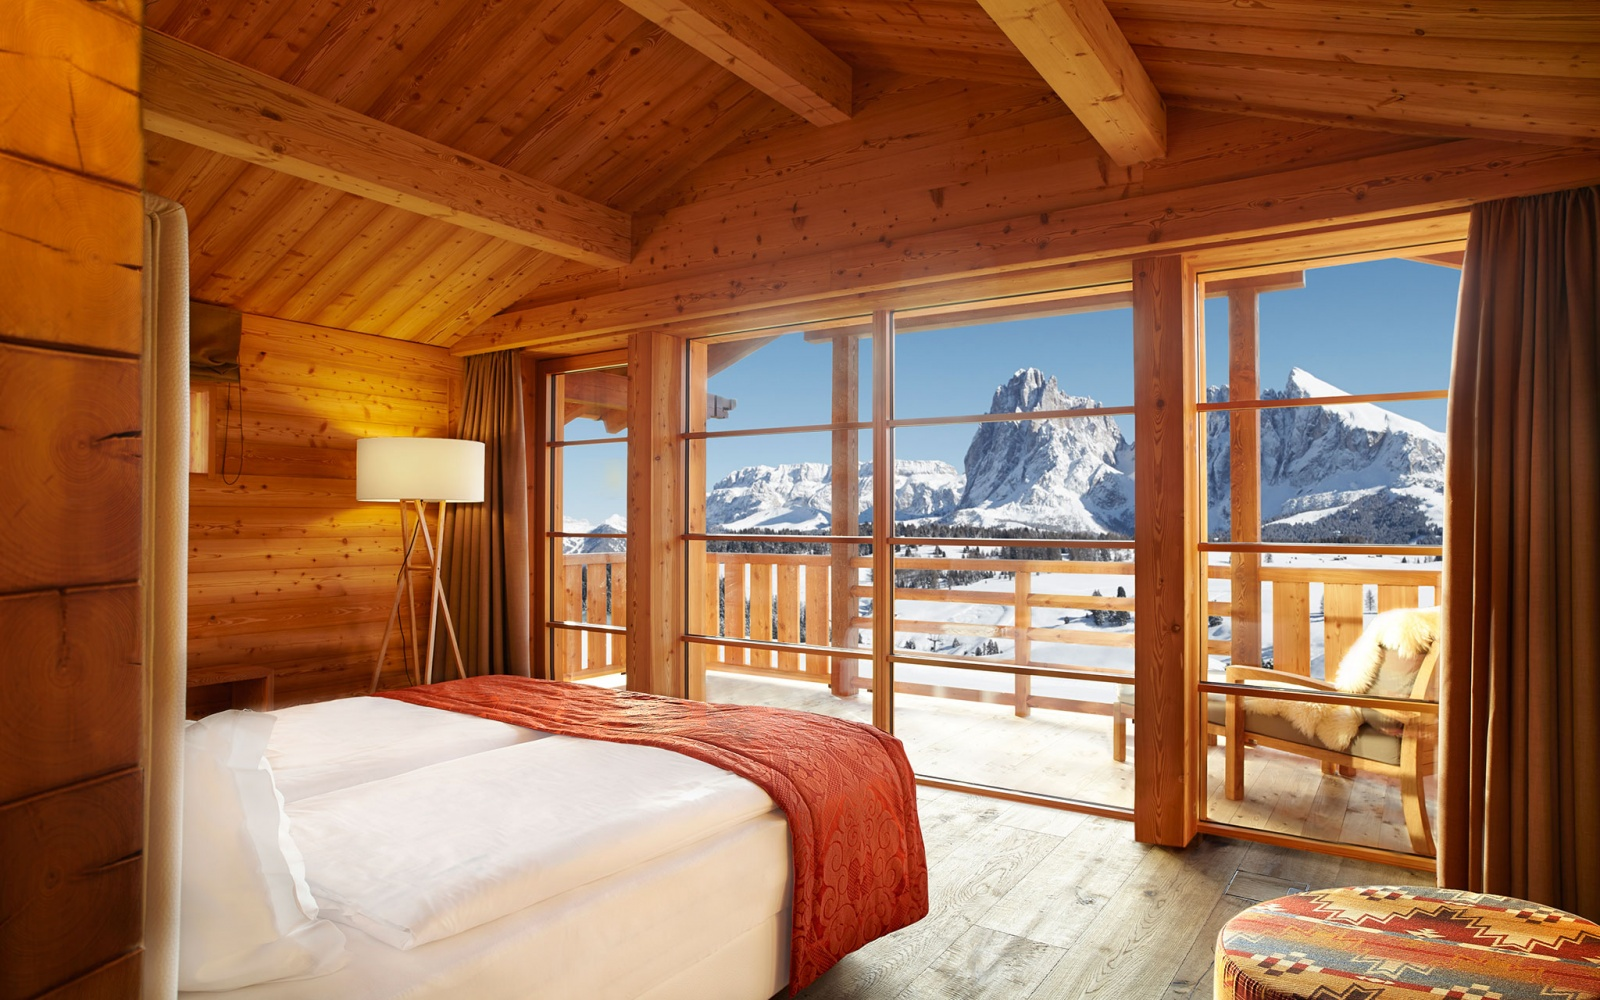 Europes Best Winter Getaways Travel Leisure - Top 10 spa vacation destinations in the world